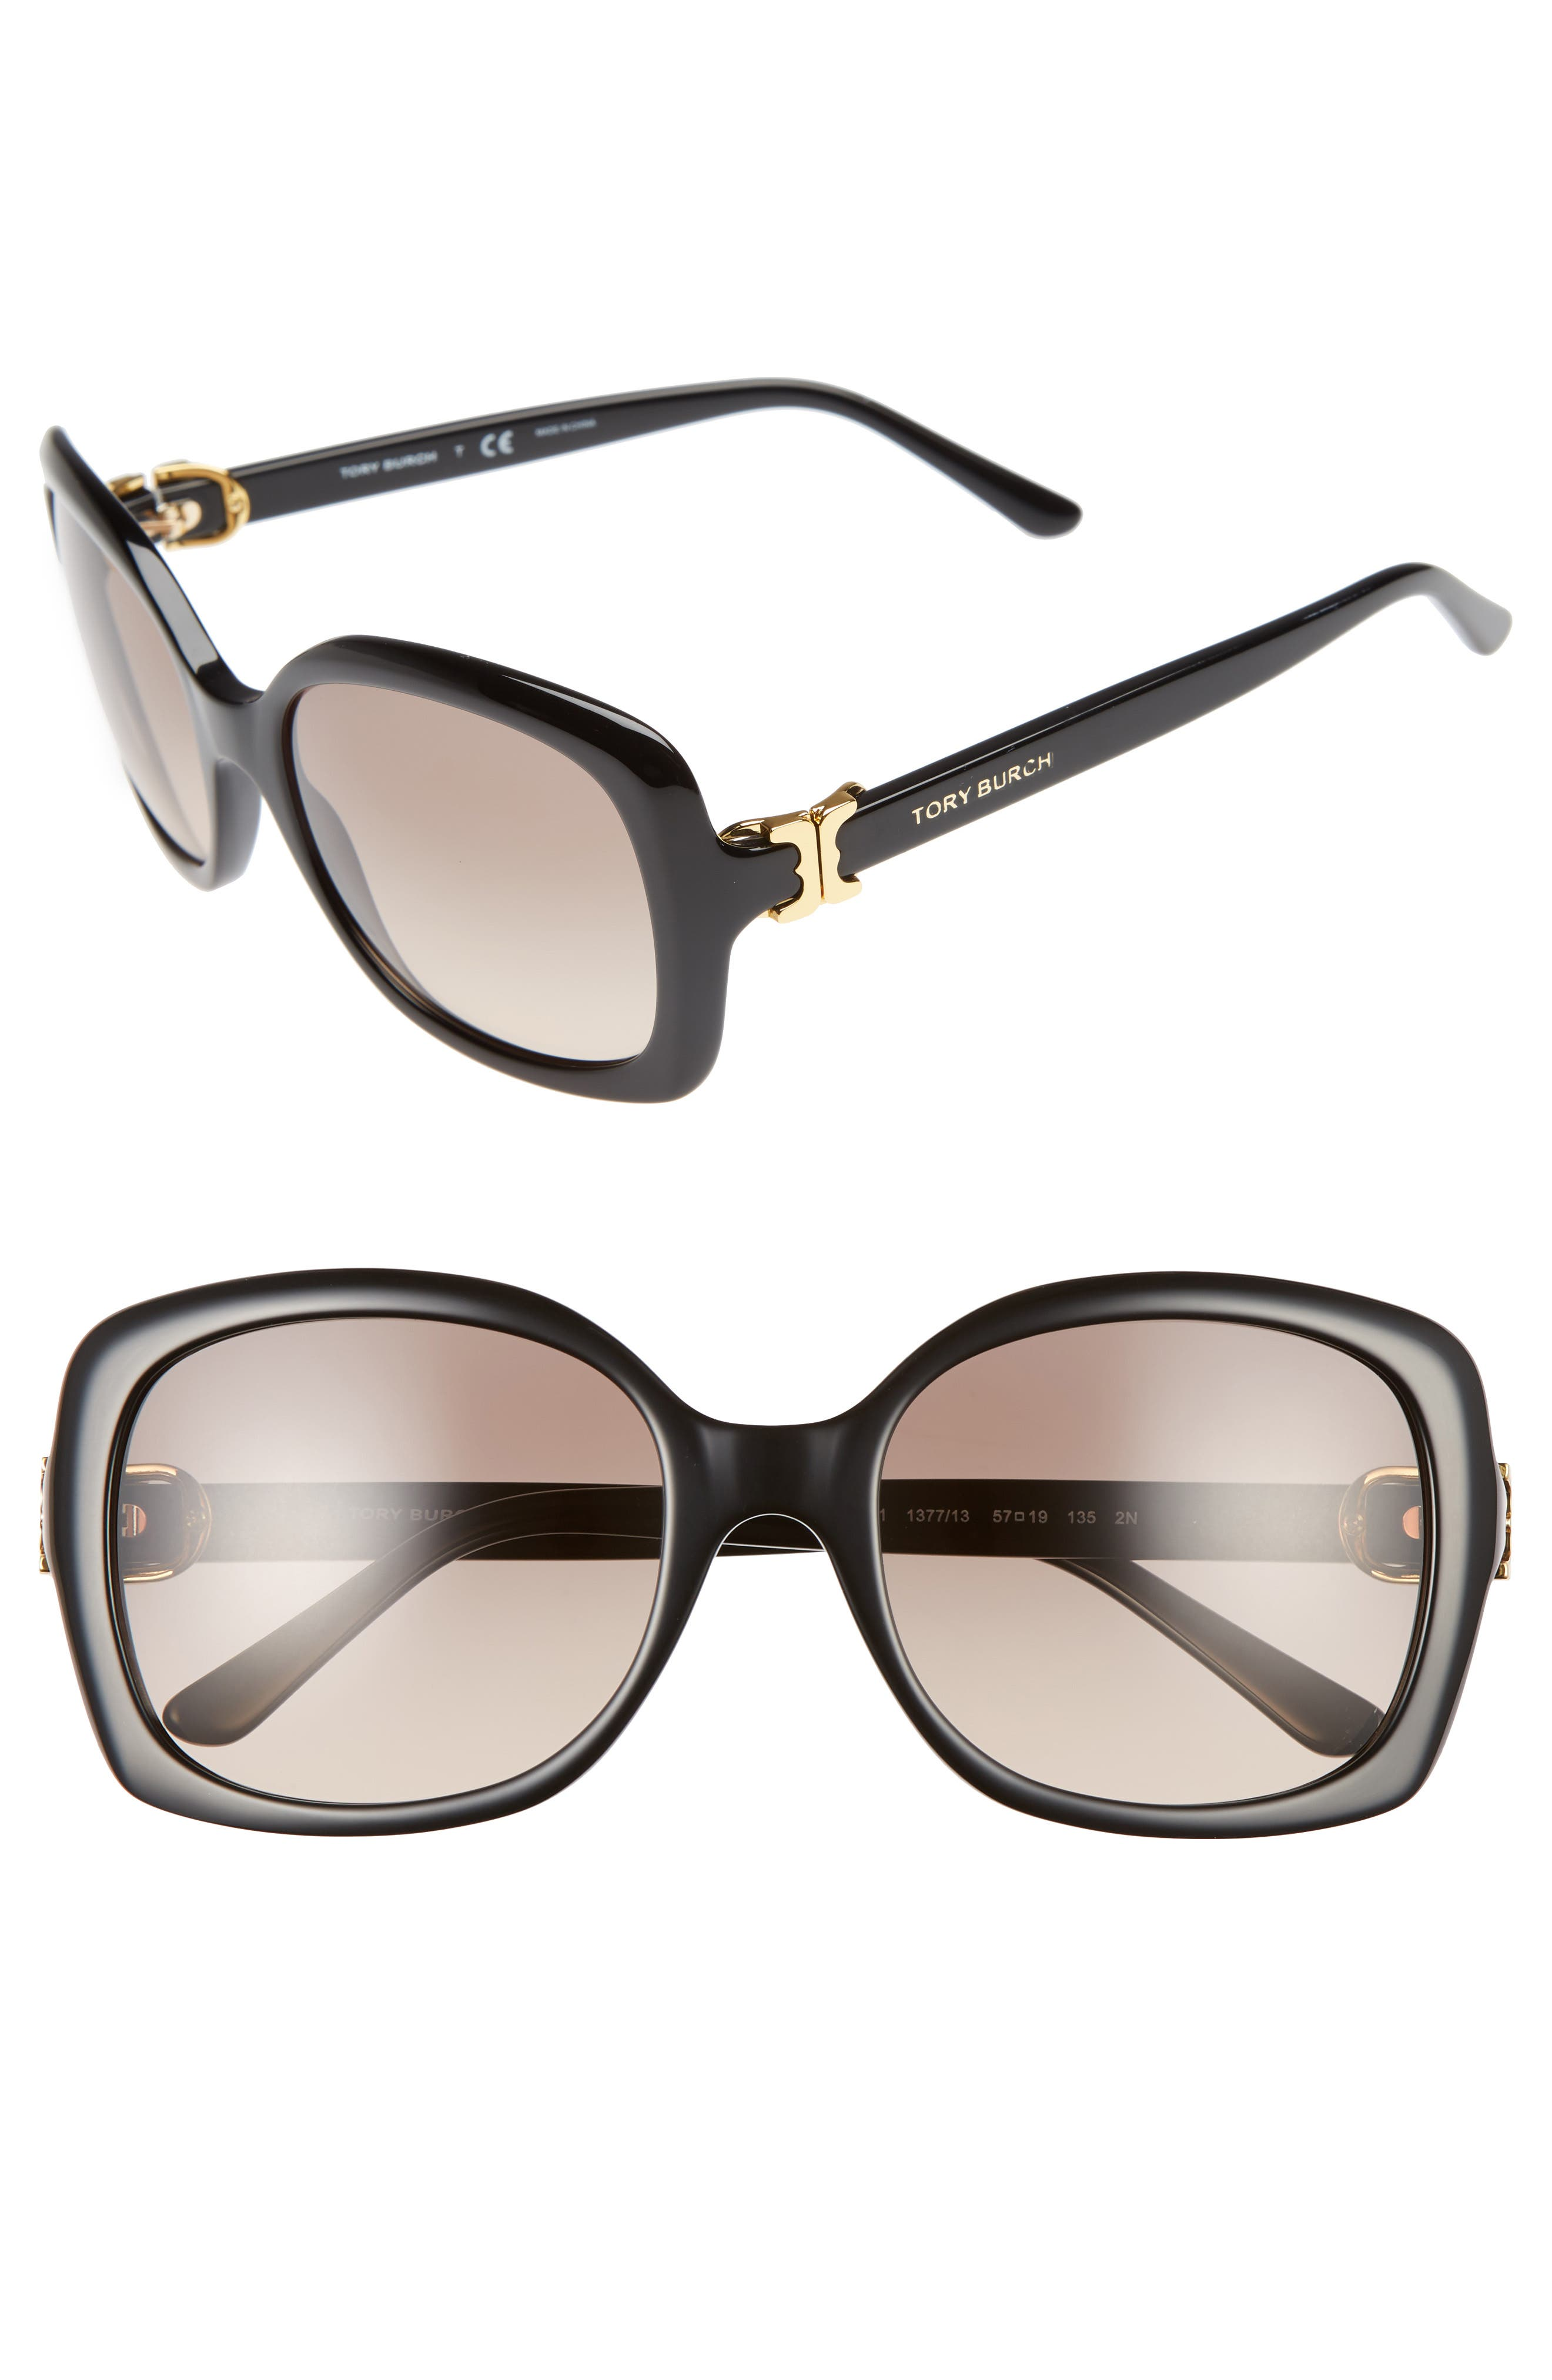 57mm Oversized Sunglasses,                             Main thumbnail 1, color,                             001